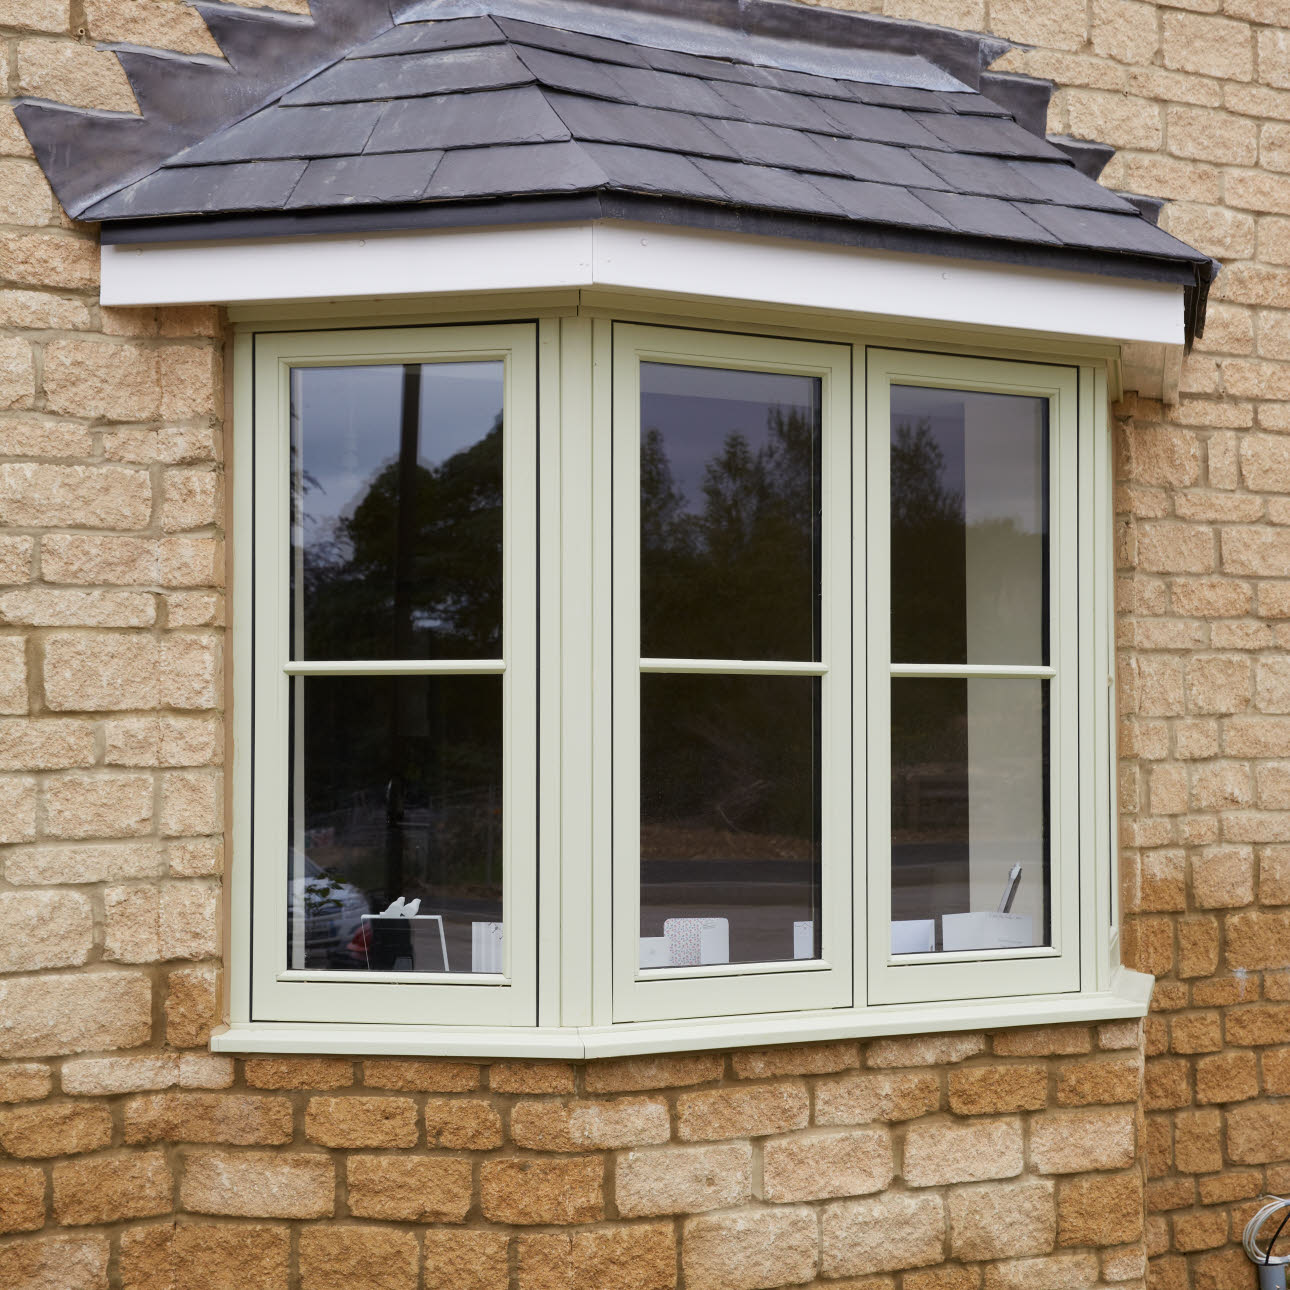 JELD-WEN Splay Bay, Elegance Casement, Horizontal Bar Timber Window